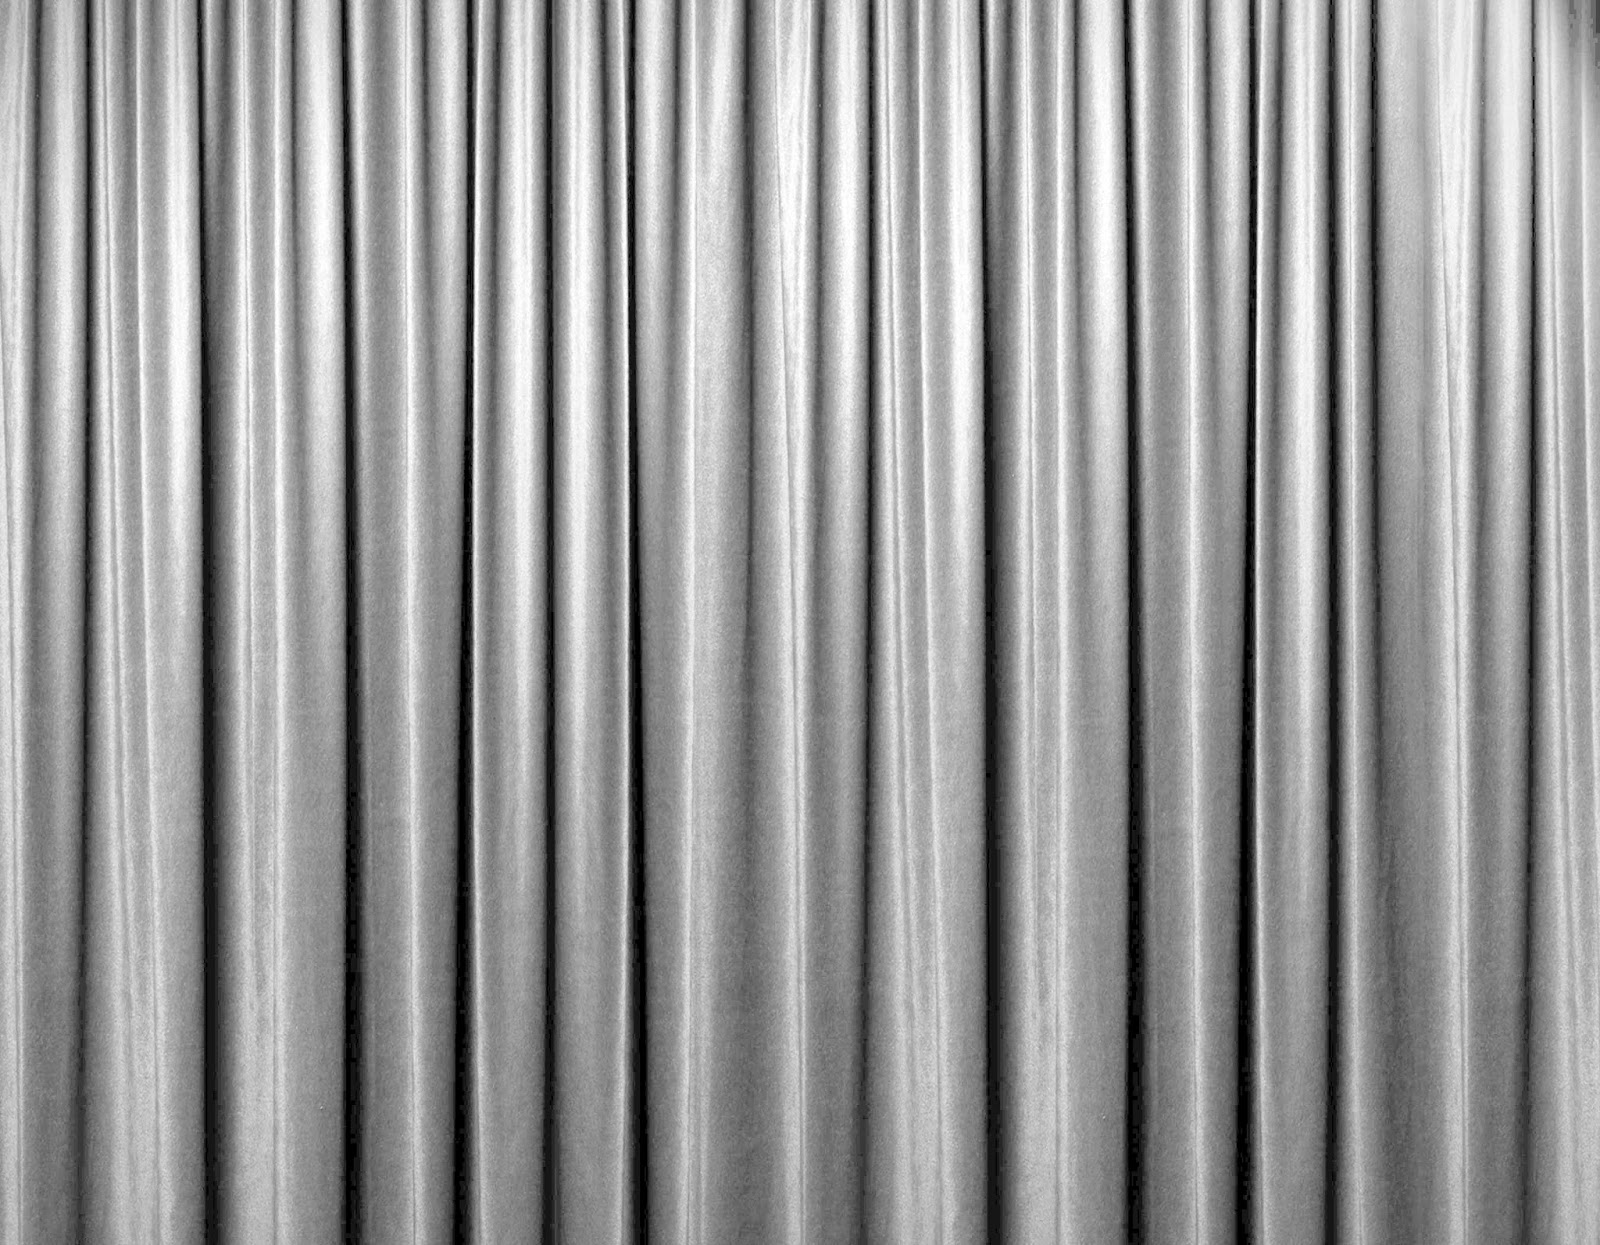 White curtain texture - I Made The Texture In Black And White So I Could Save Ink This Way I Used My Laser Printer Toner Which Is Faster And Cheaper